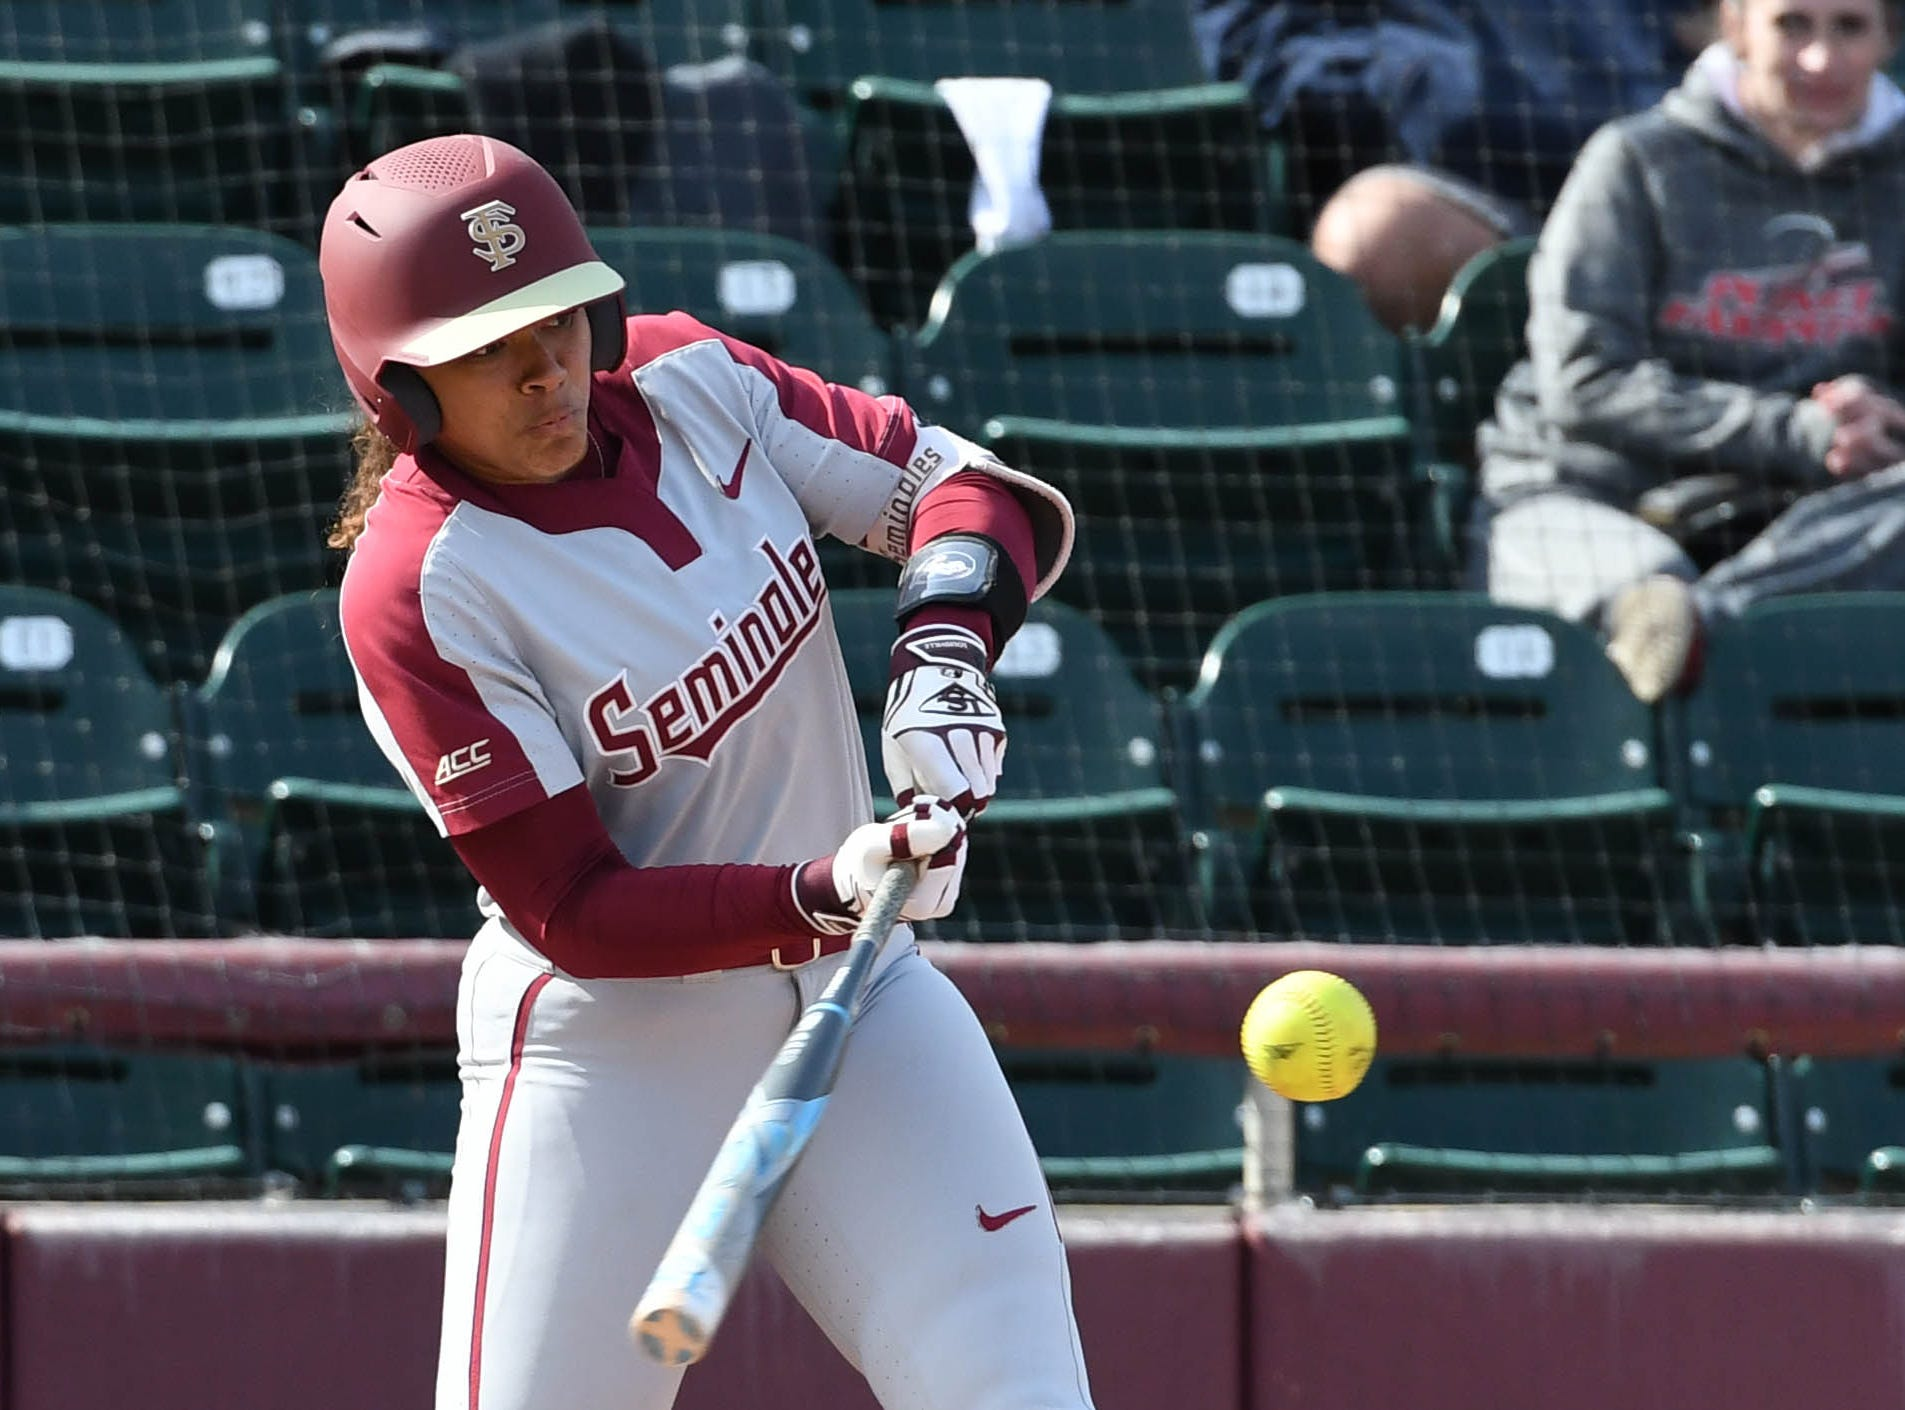 FSU redshirt sophomore utility Elizabeth Mason (5) hitting a basehit in the fourth inning of FSU's game against UNCG at Joanne Graf field on February 9, 2019.